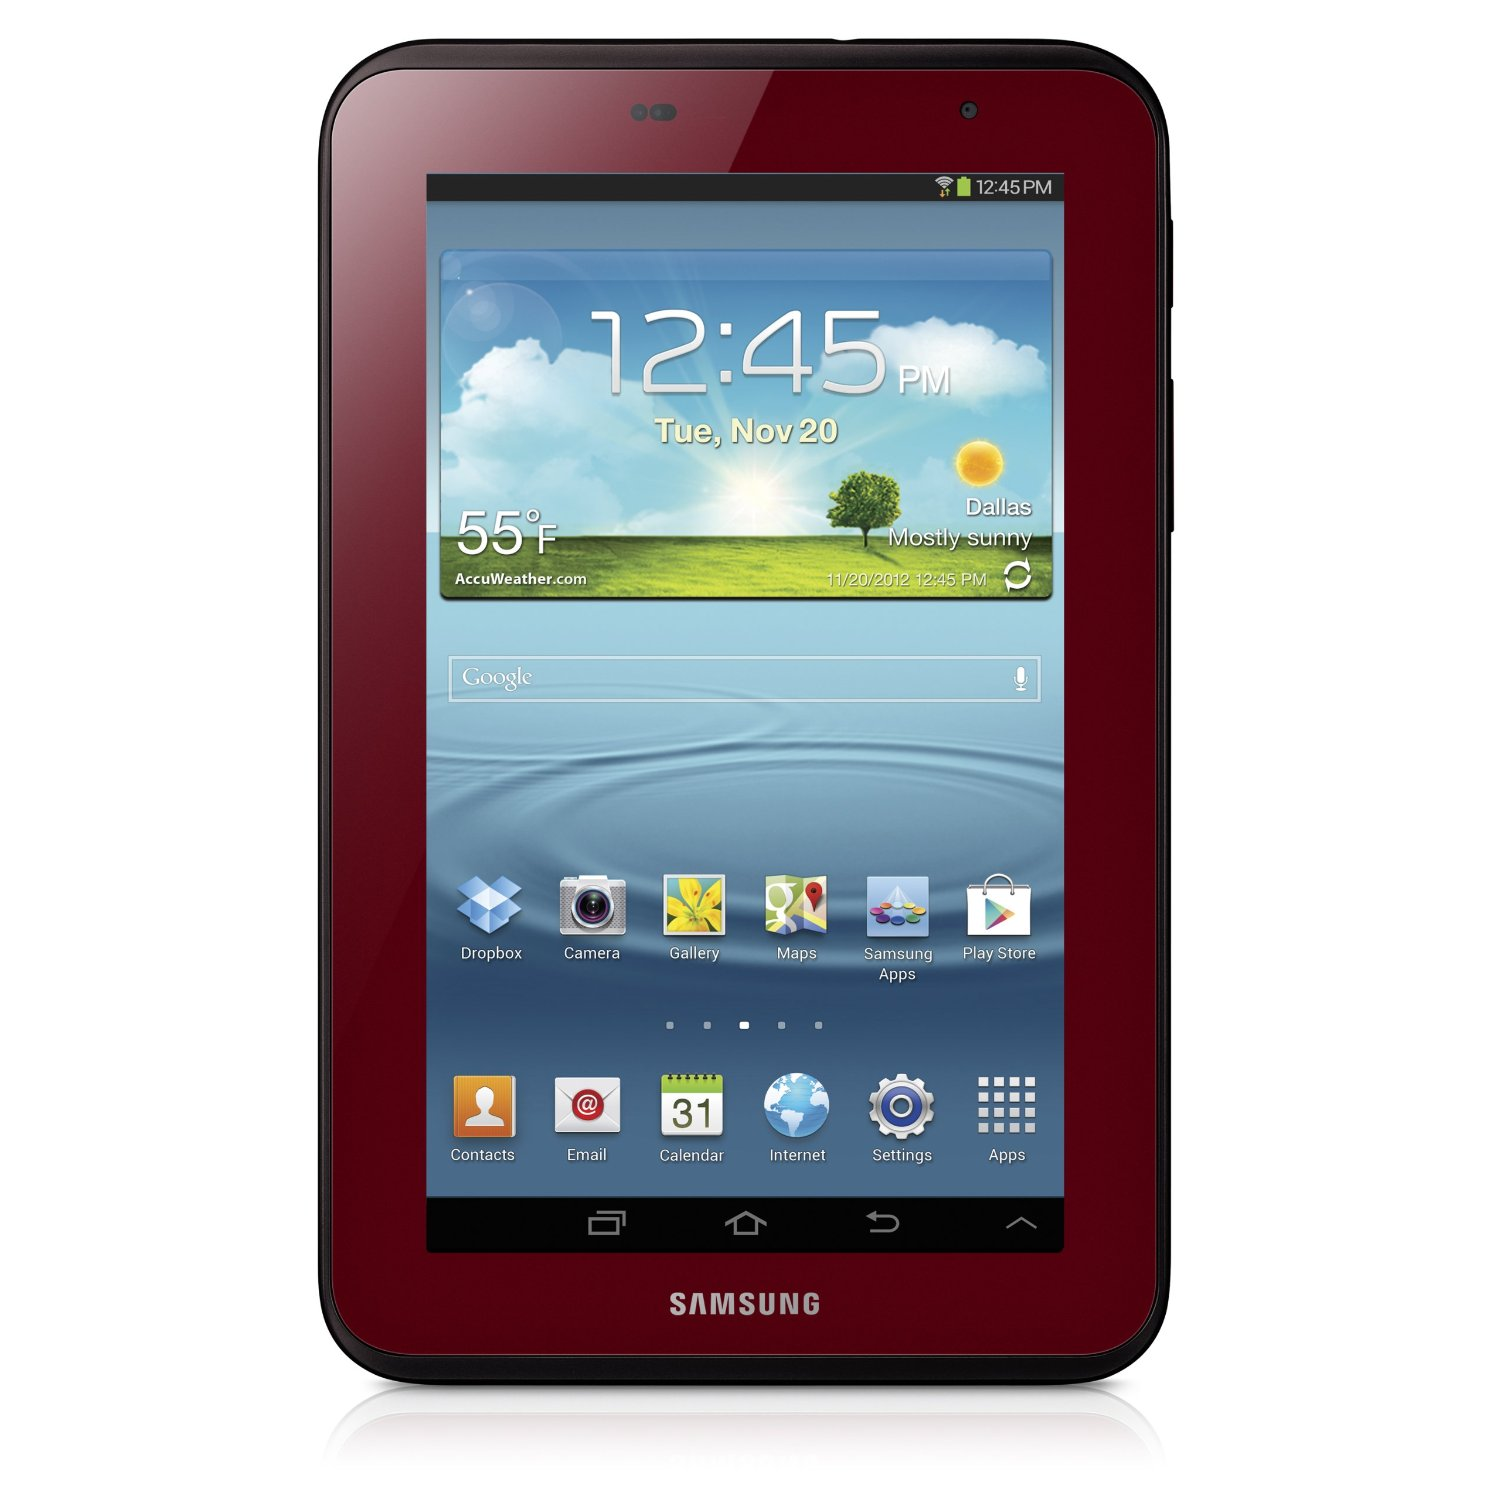 Samsung galaxy tab 7 0 in garnet red for valentine 39 s day for Samsung galaxy s tablet